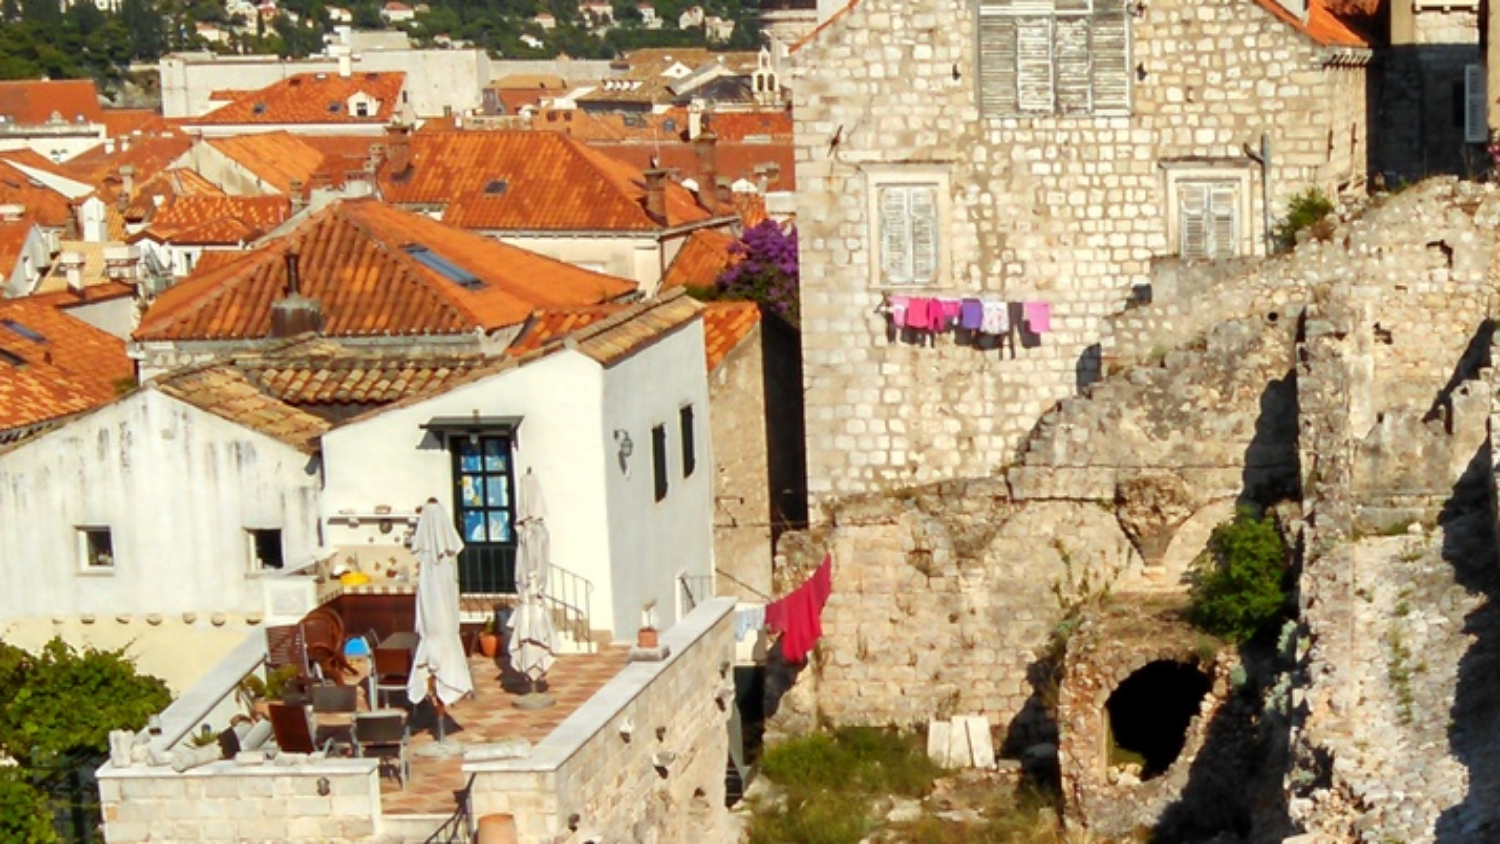 Laundry on the line in Dubrovnik, Croatia